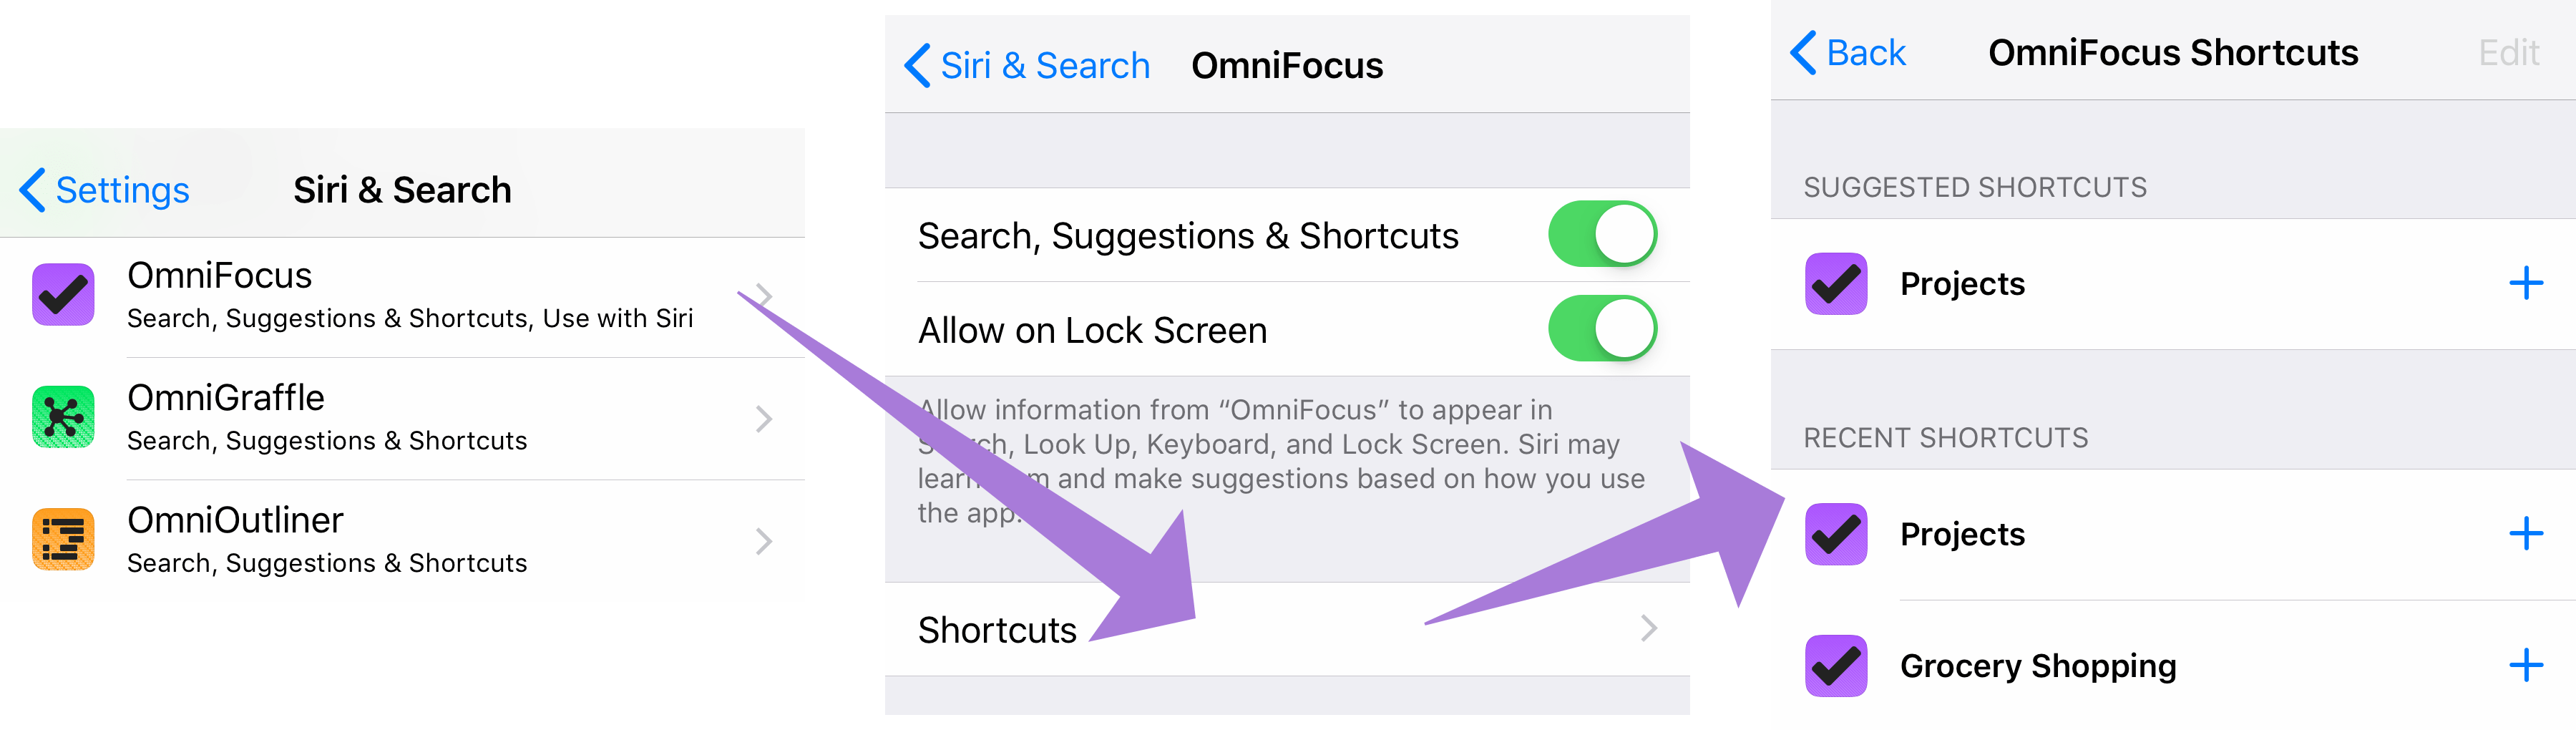 Navigating to the full list of recent OmniFocus shortcuts in iOS 12 Siri & Search settings